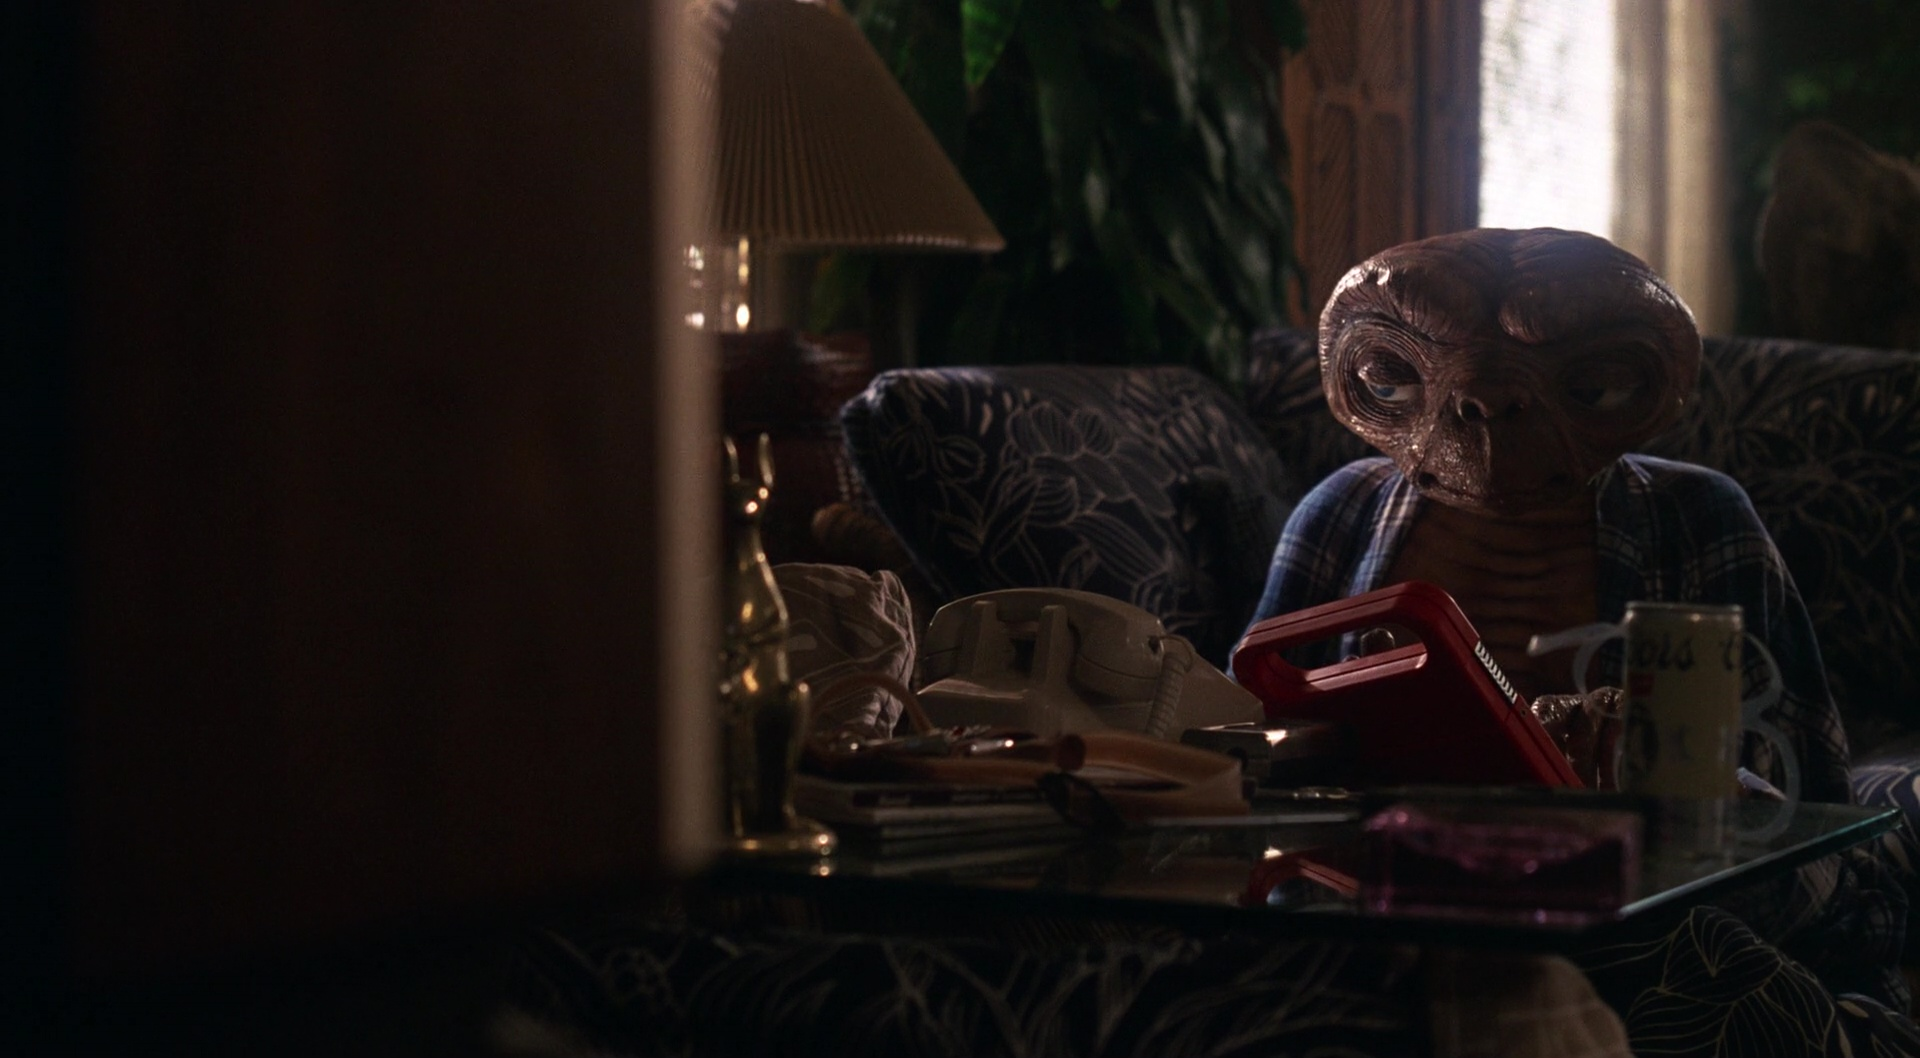 E.T. the Extra-Terrestrial film still 2